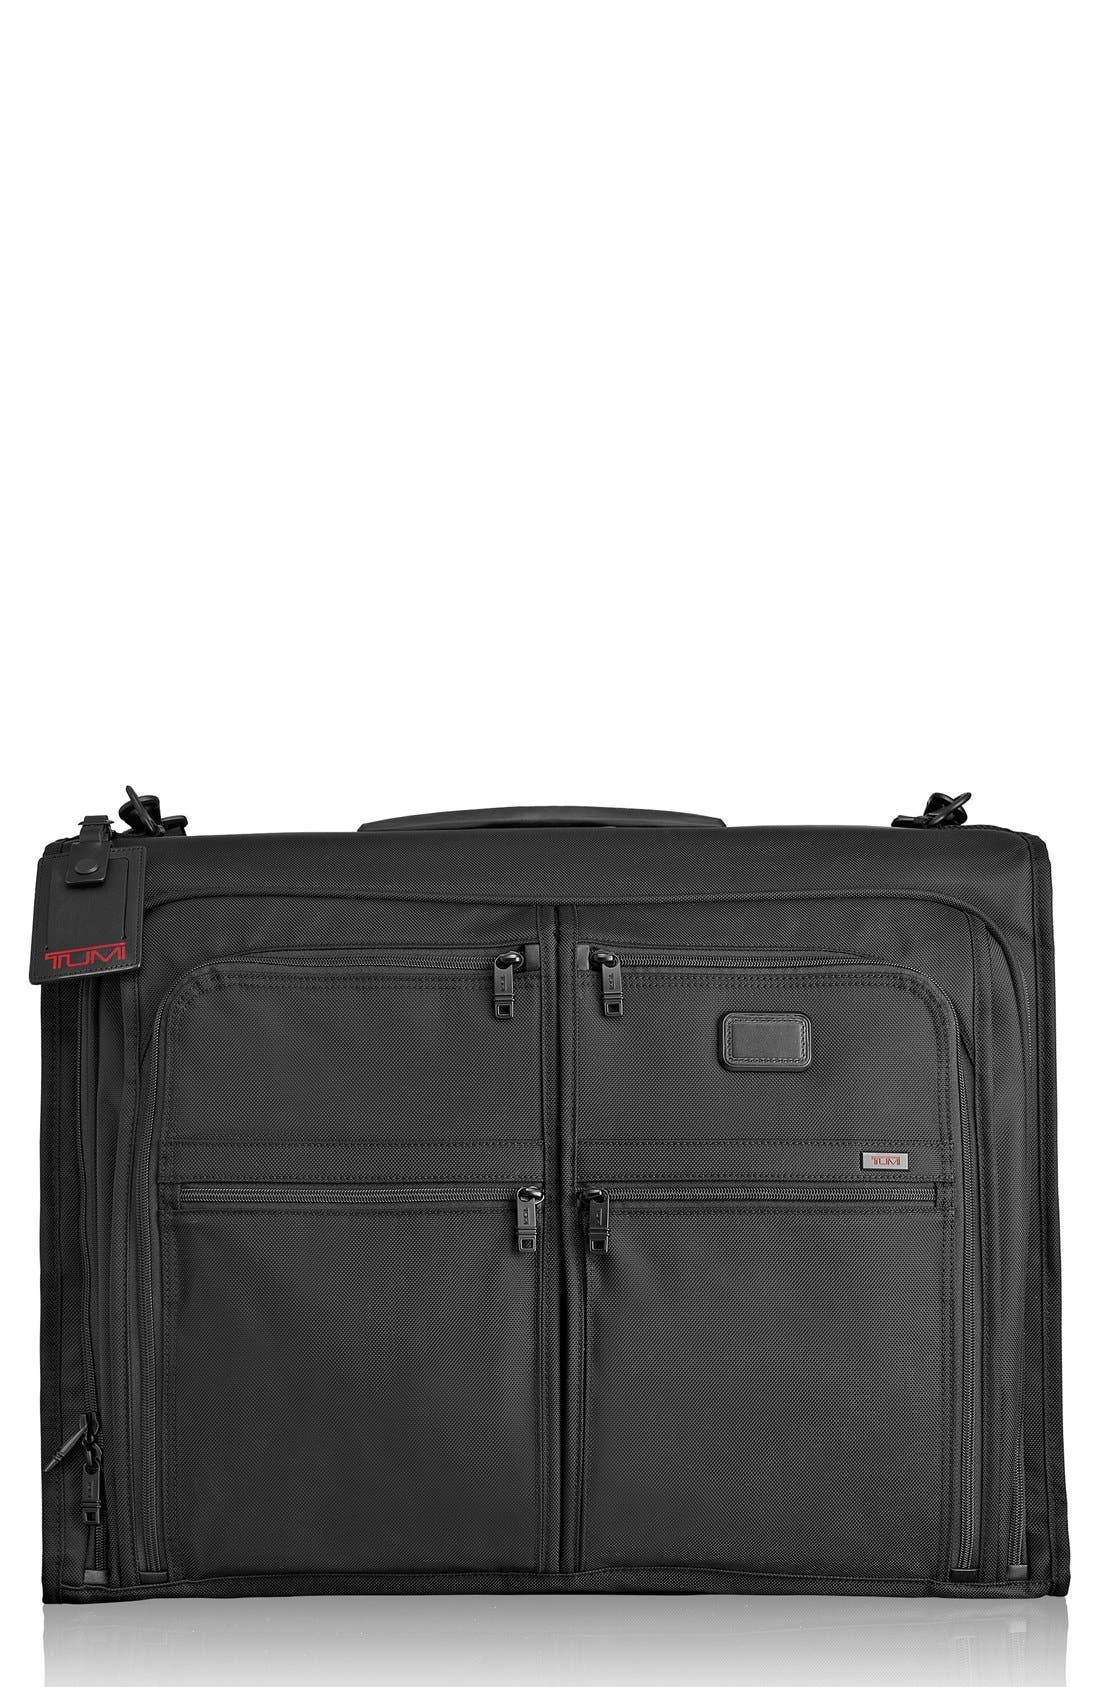 TUMI Alpha 2 Classic Garment Bag